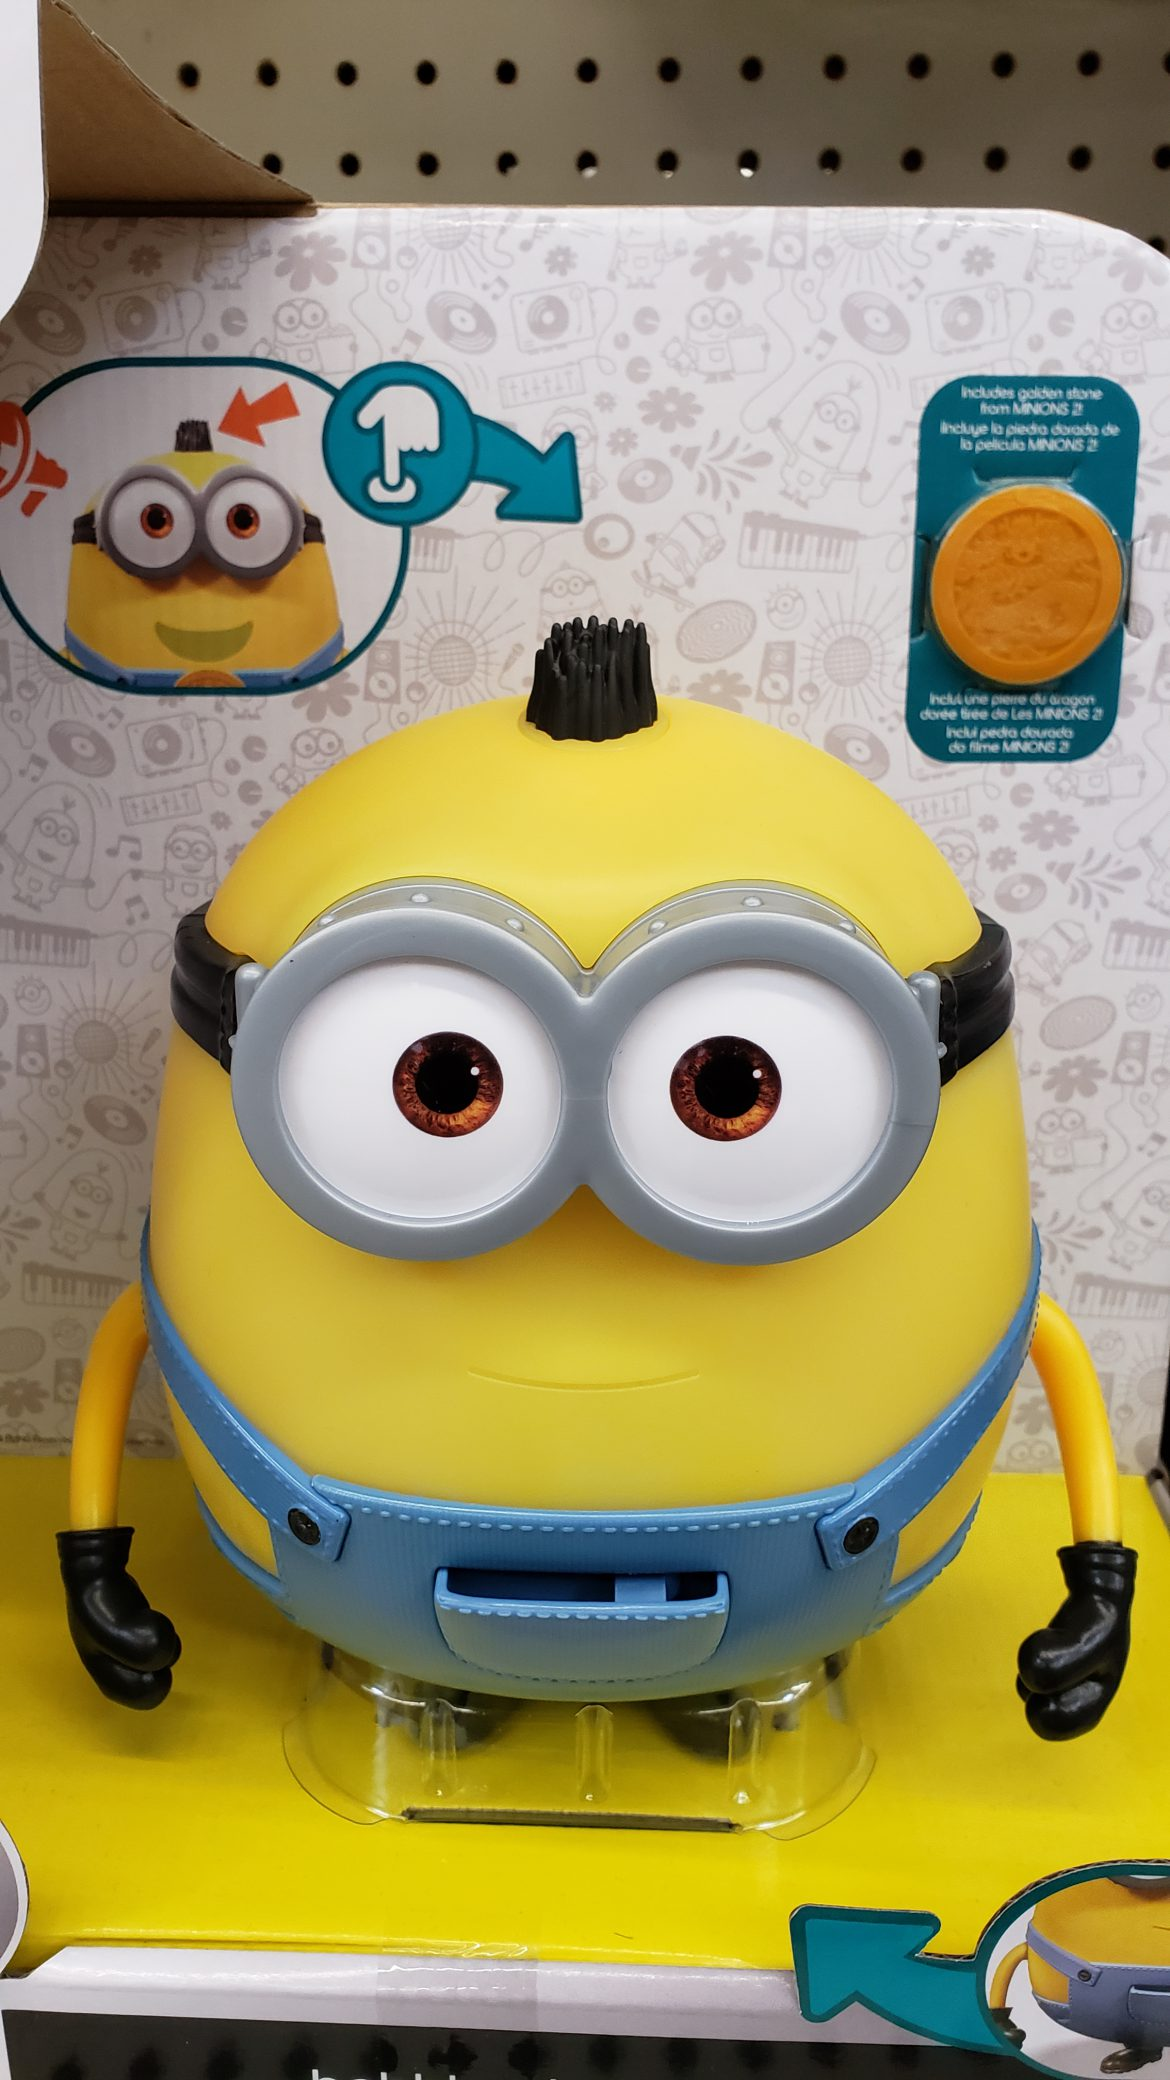 Minions: the Rise of Gru Toys Now Available at Stores